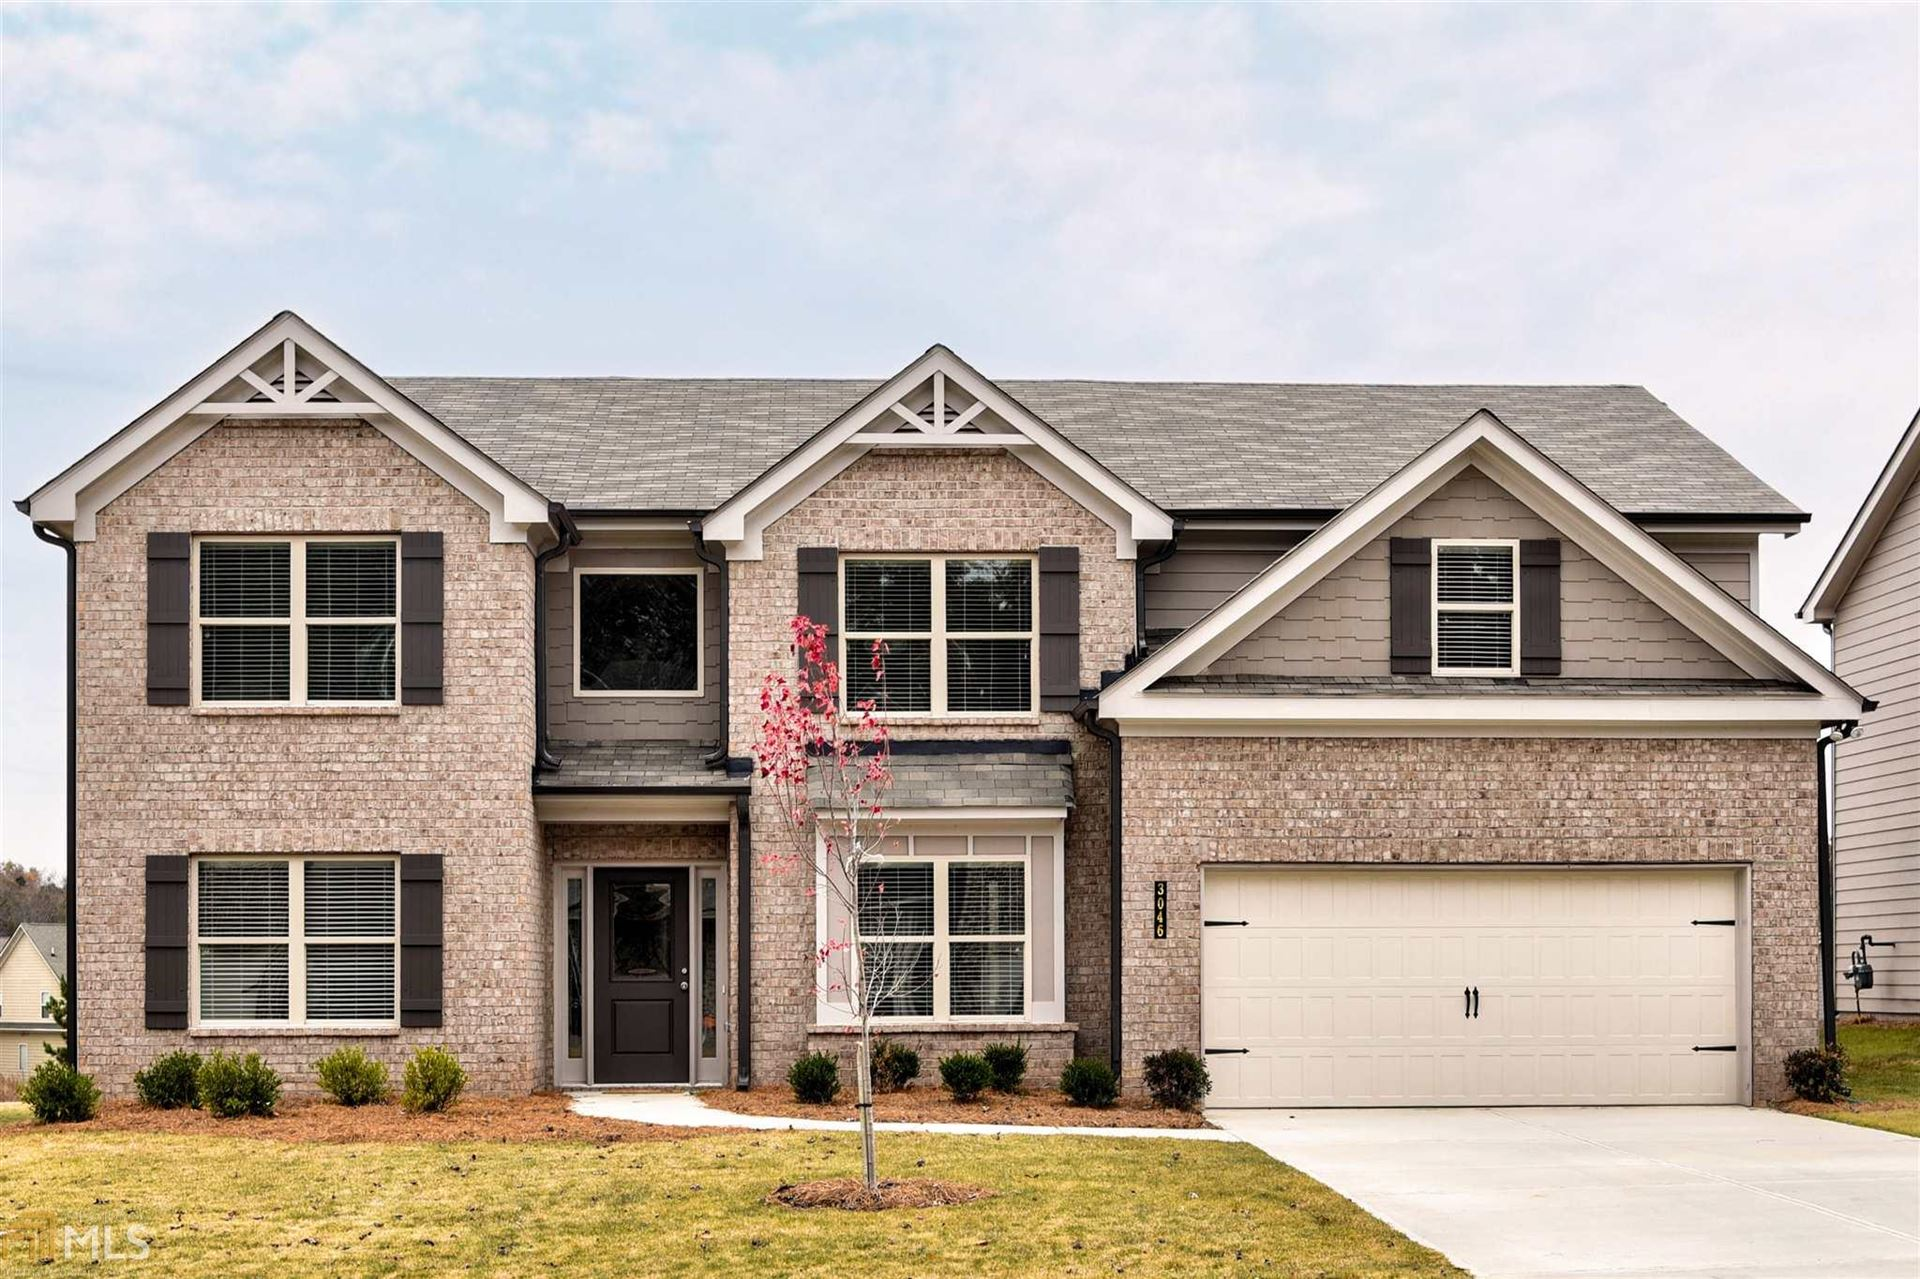 5962 Park Bay Ct, Flowery Branch, GA 30542 - #: 8796394